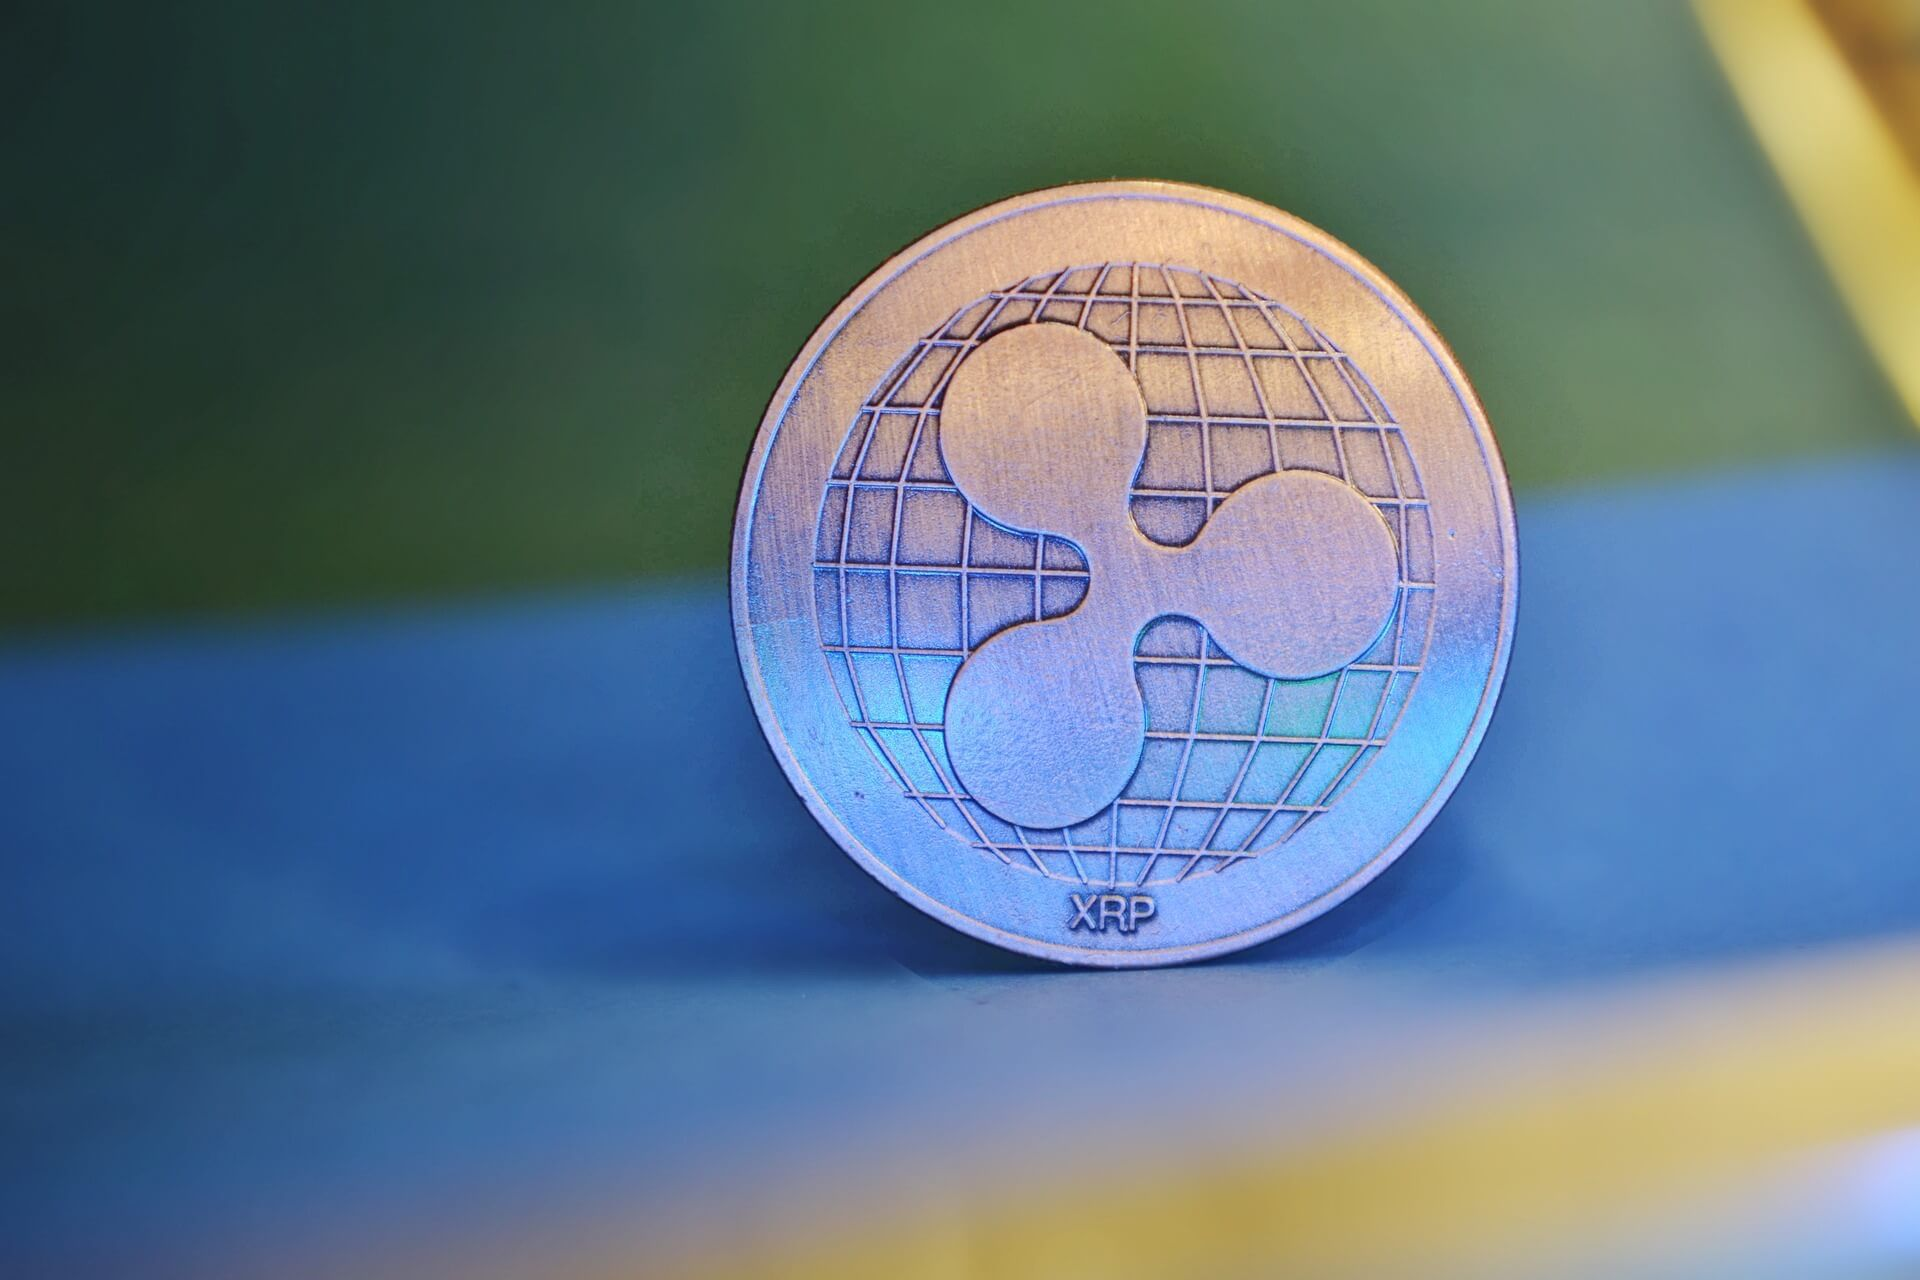 Binance-CEO-confirms-additional-trading-pairs-with-XRP-as-base-pair-